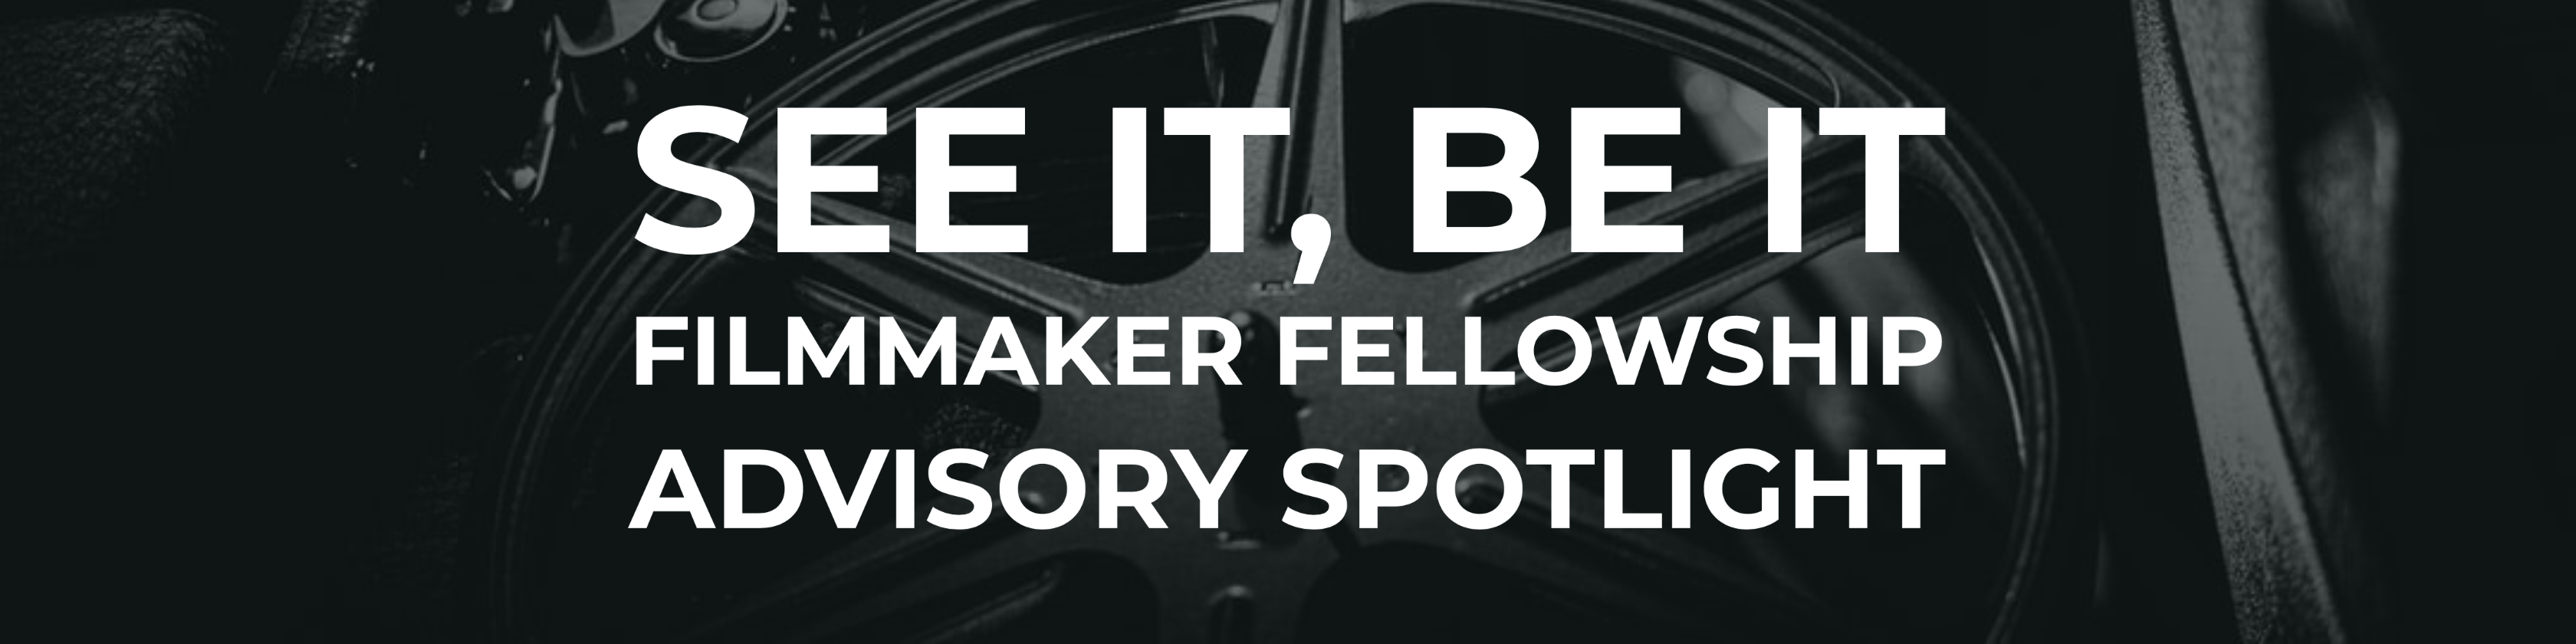 See It, Be It Filmmaker Fellowship Advisory Spotlight